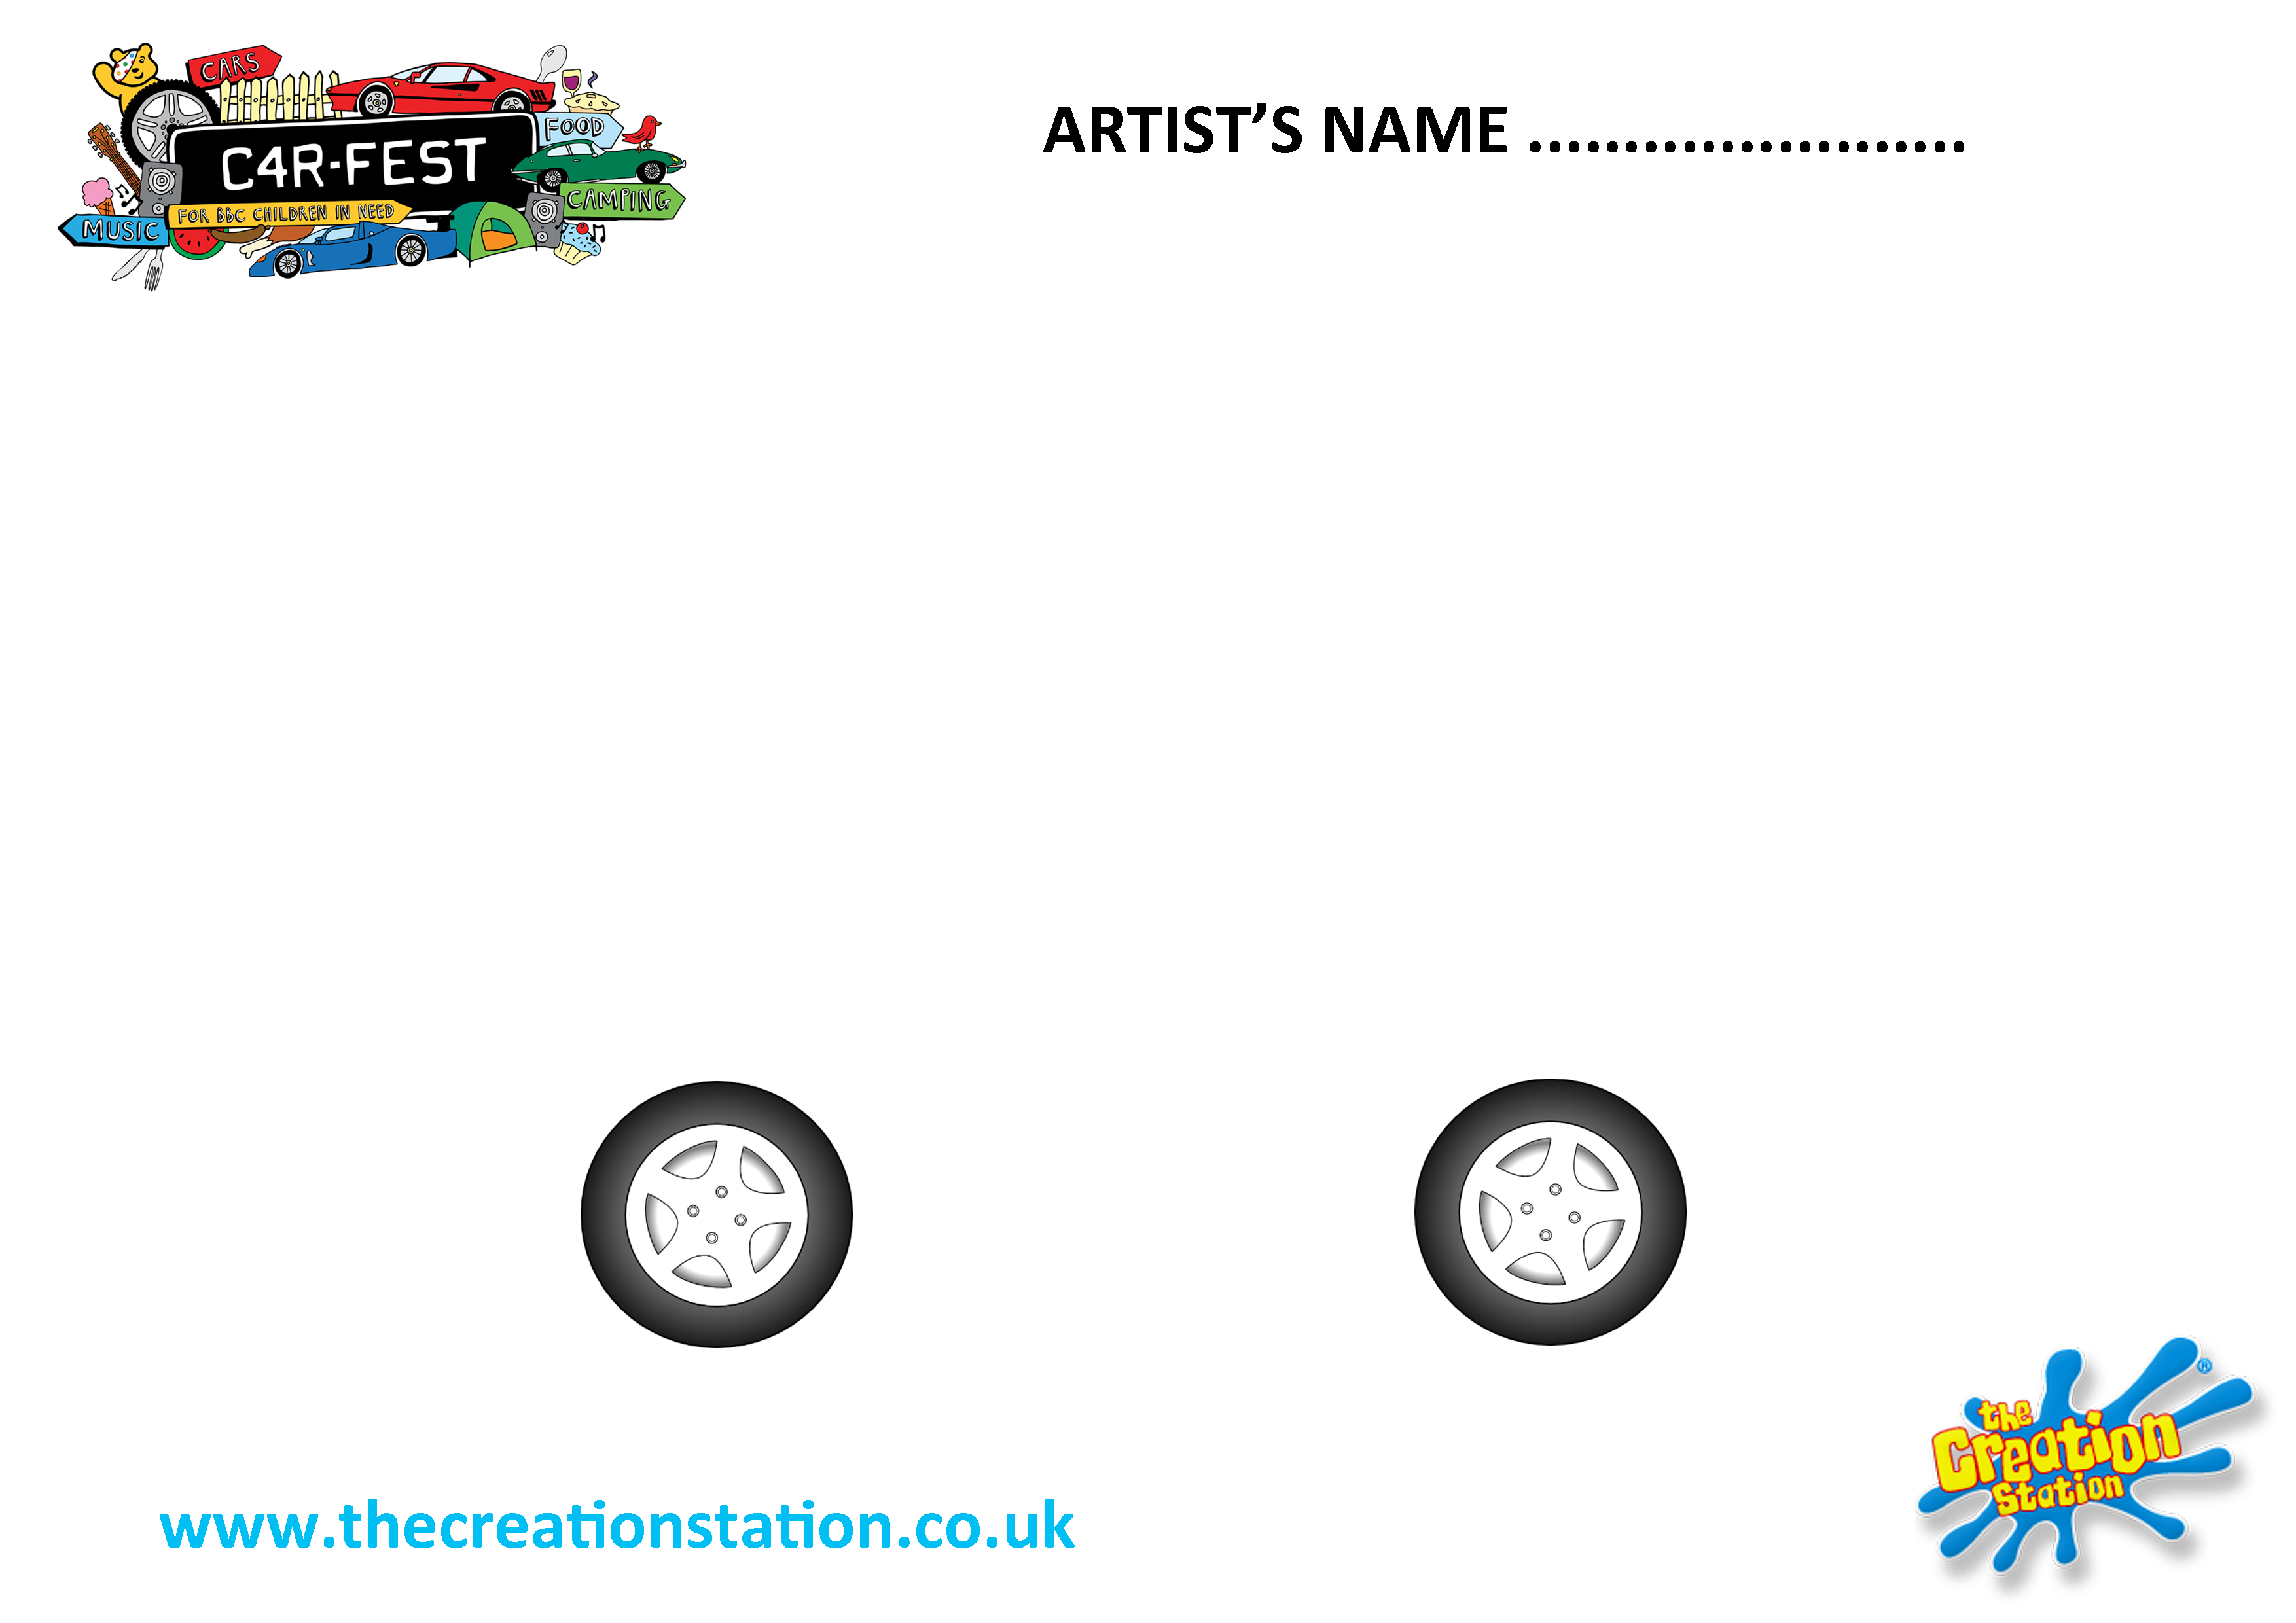 Design your own creative car in celebration of Creation